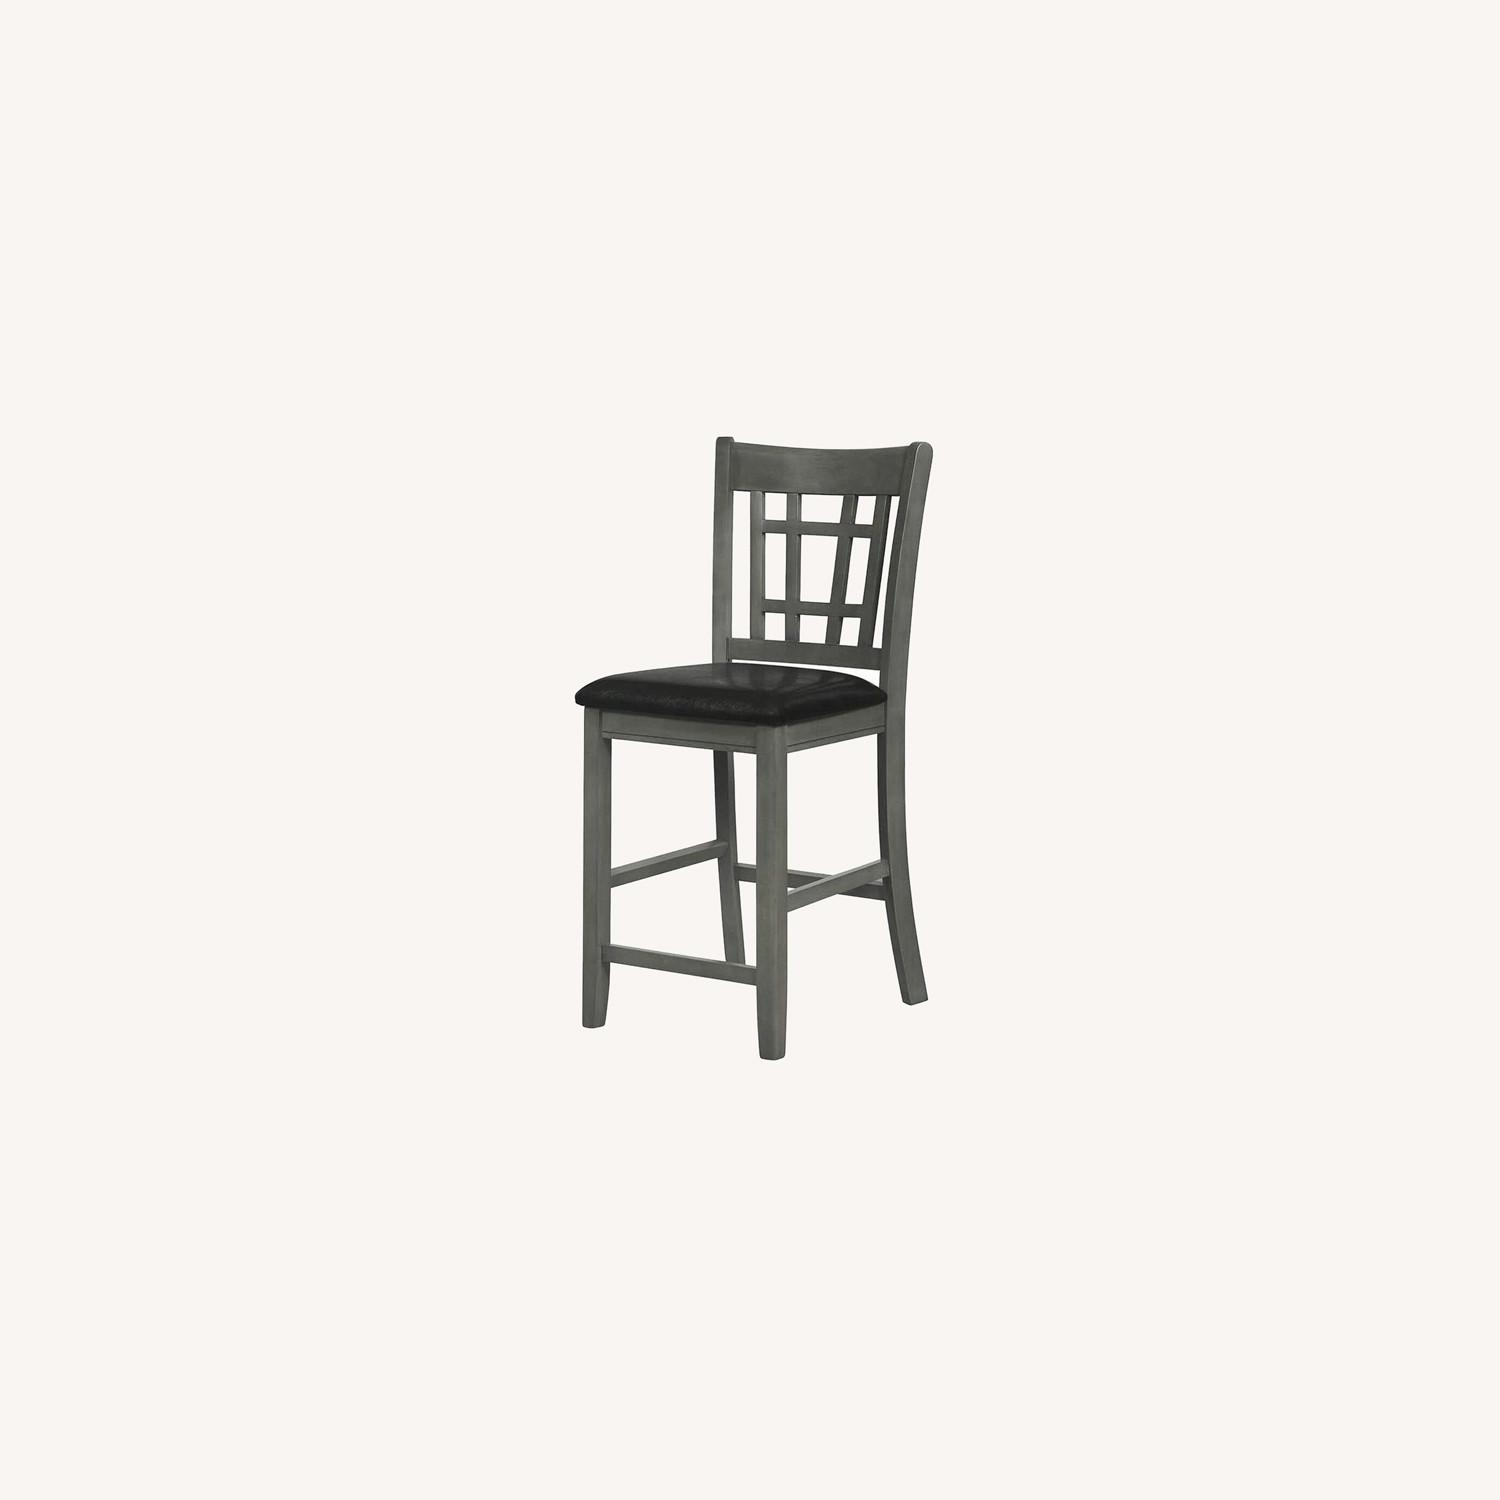 Counter Height Chair In Medium Gray Finish - image-9